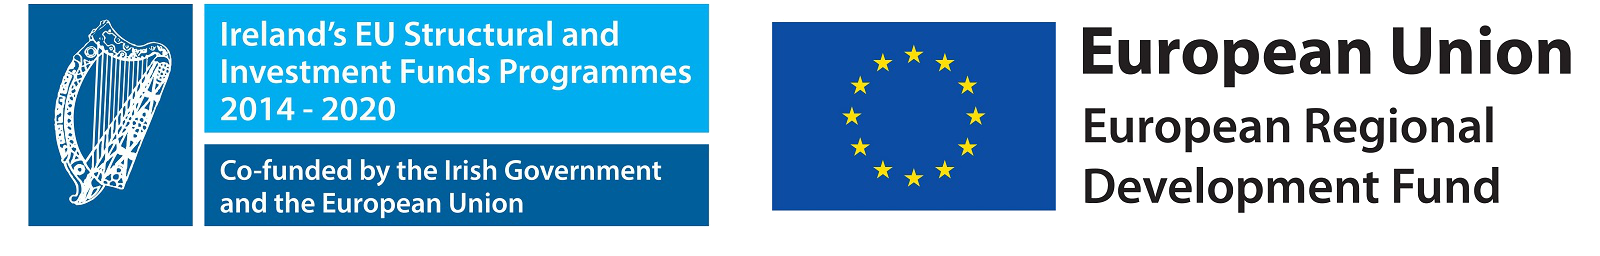 EU logos represented in a graphic